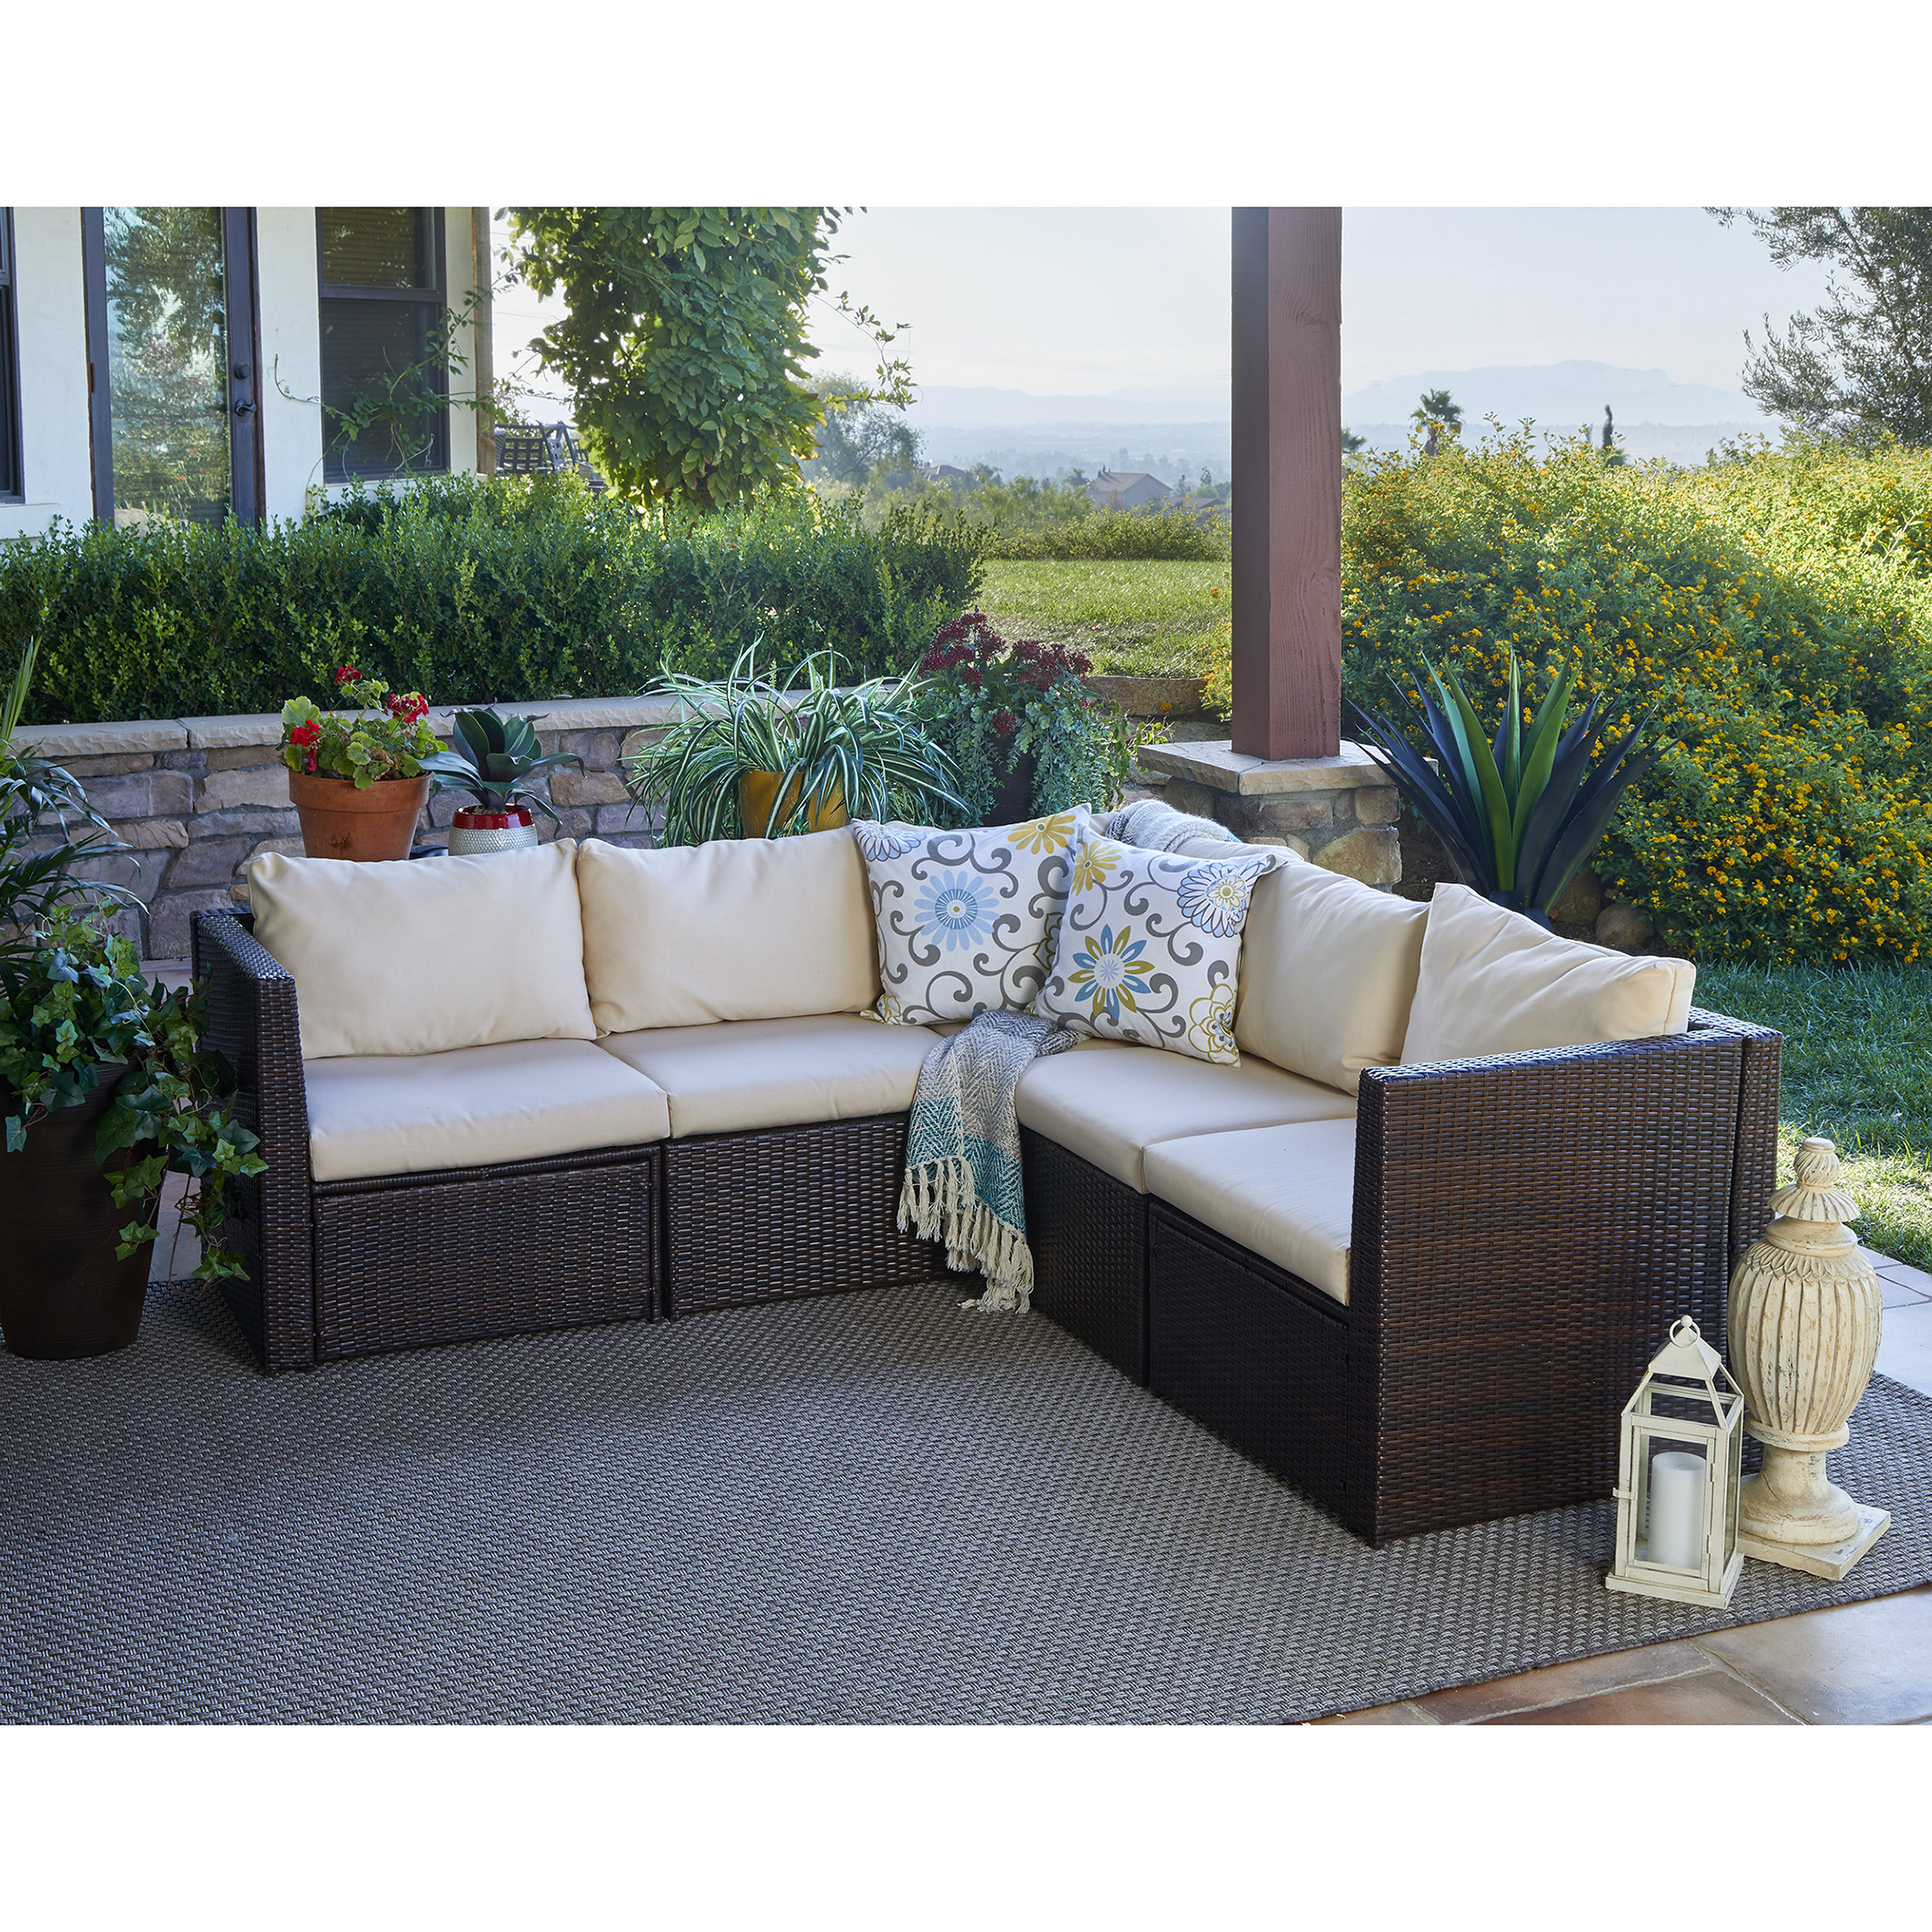 Favorite Larsen Patio Sectional With Cushions Throughout Purington Circular Patio Sectionals With Cushions (View 11 of 20)